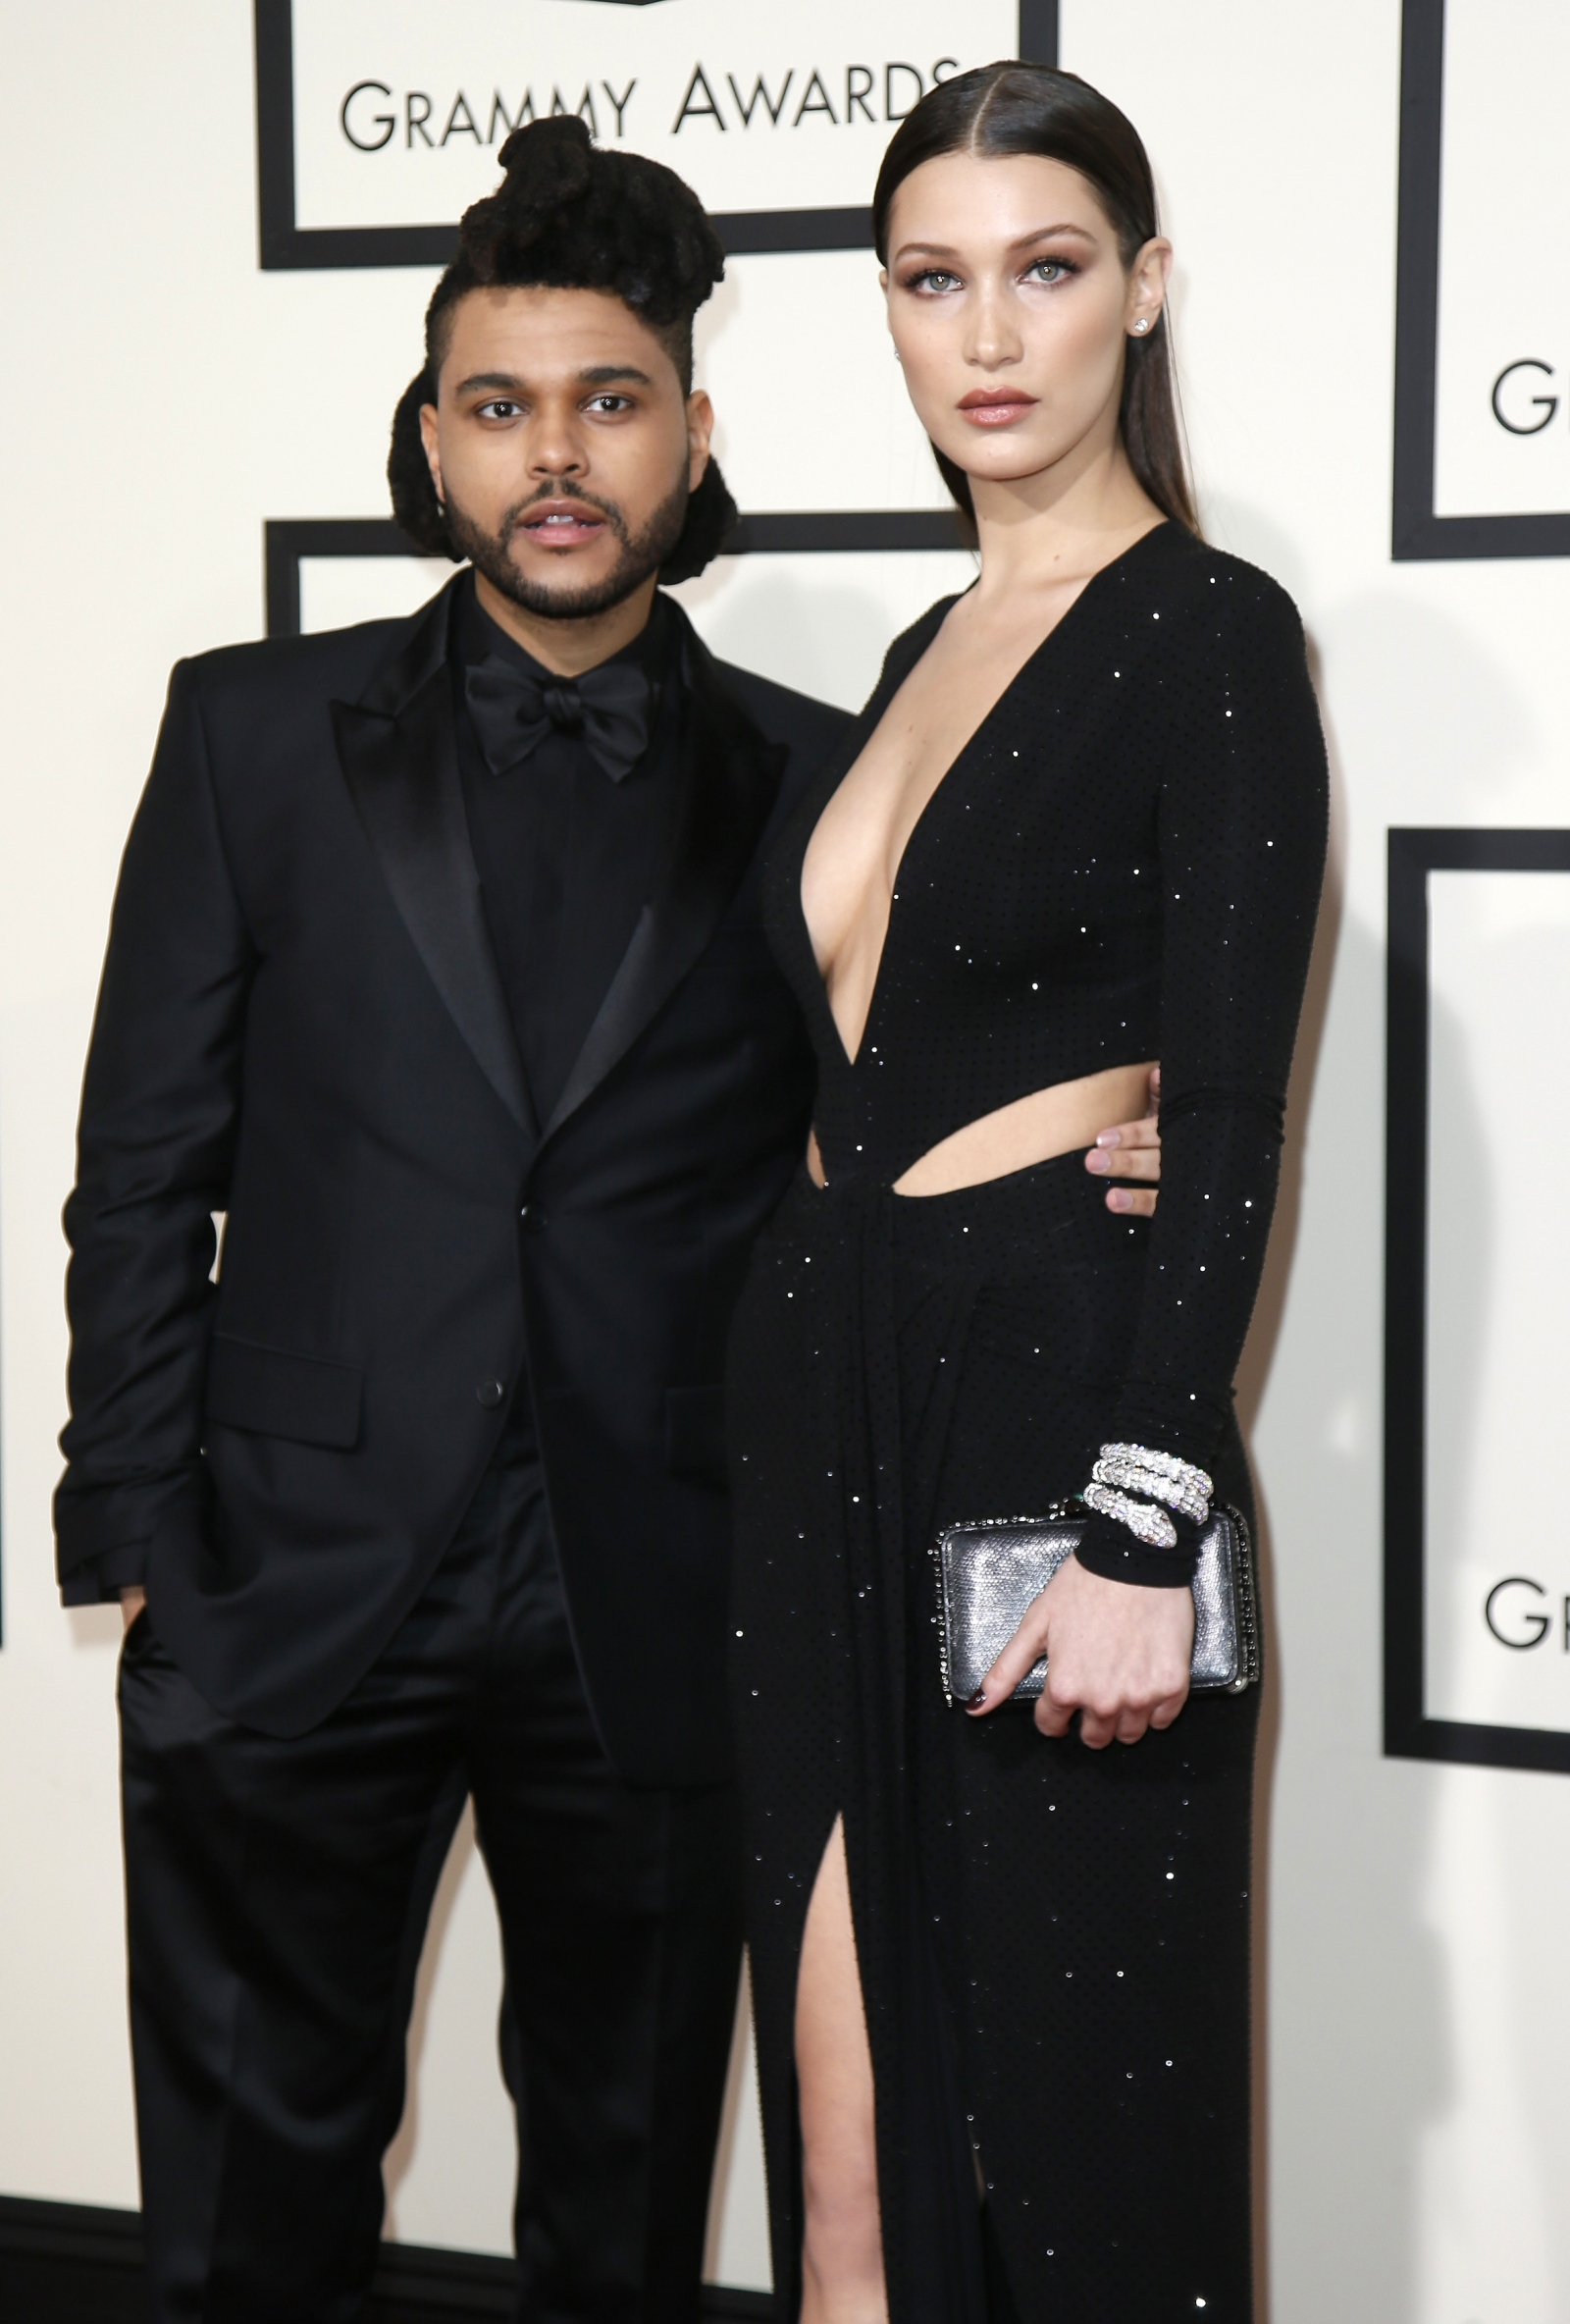 weir sukollawat and bella dating weeknd